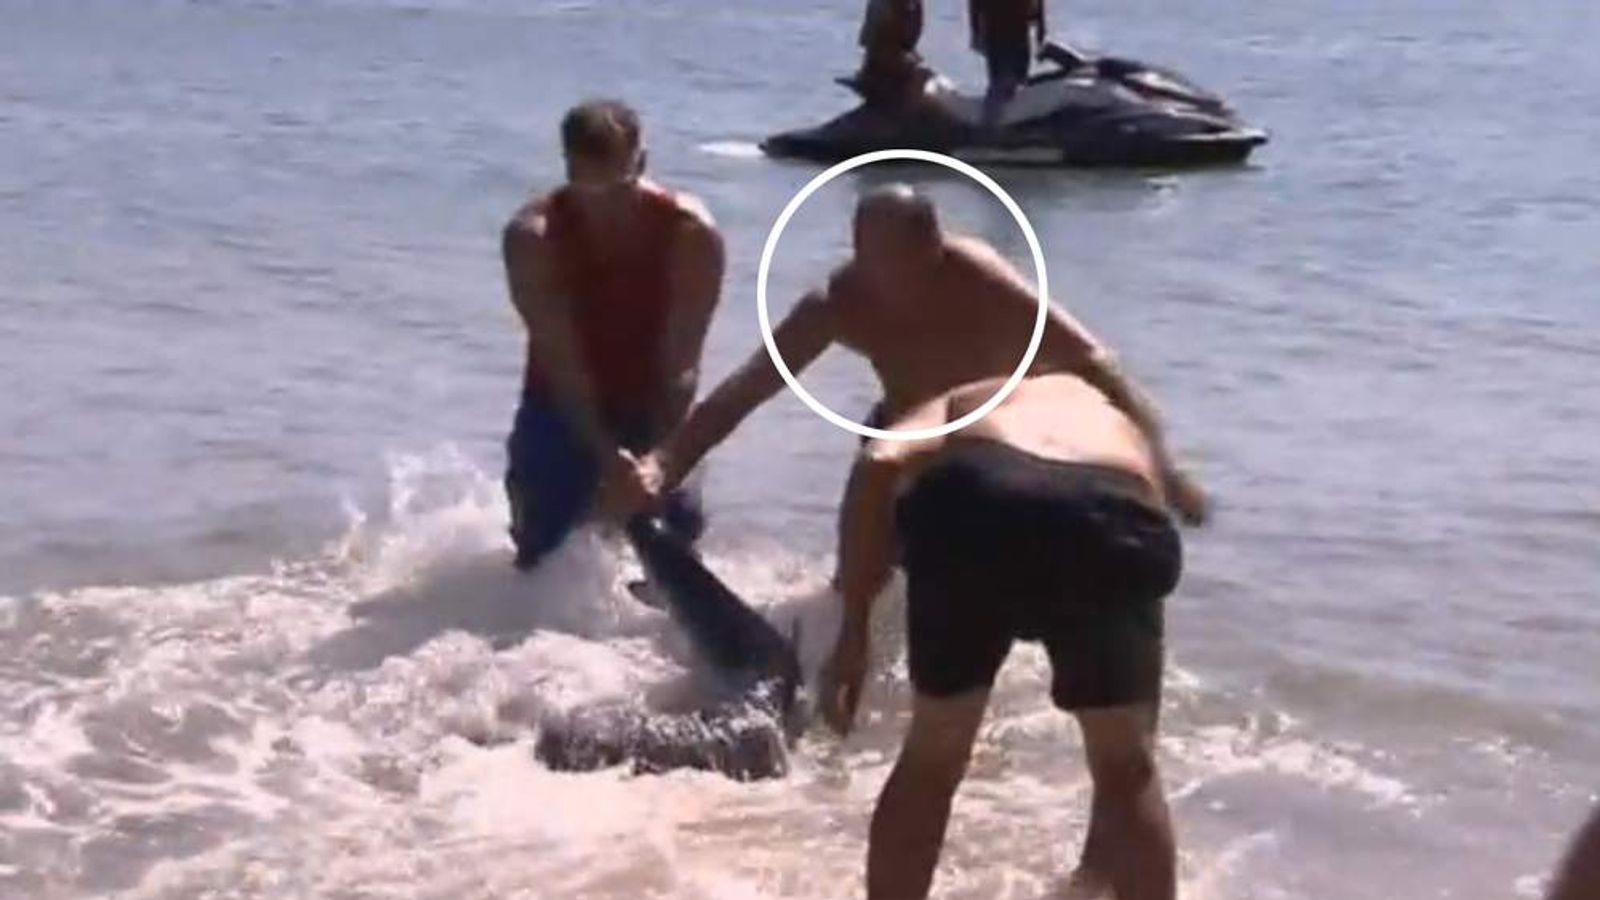 A Welshman holidaying in Australia fights off a dangerous shark after it strayed too close to children swimming on a beach.